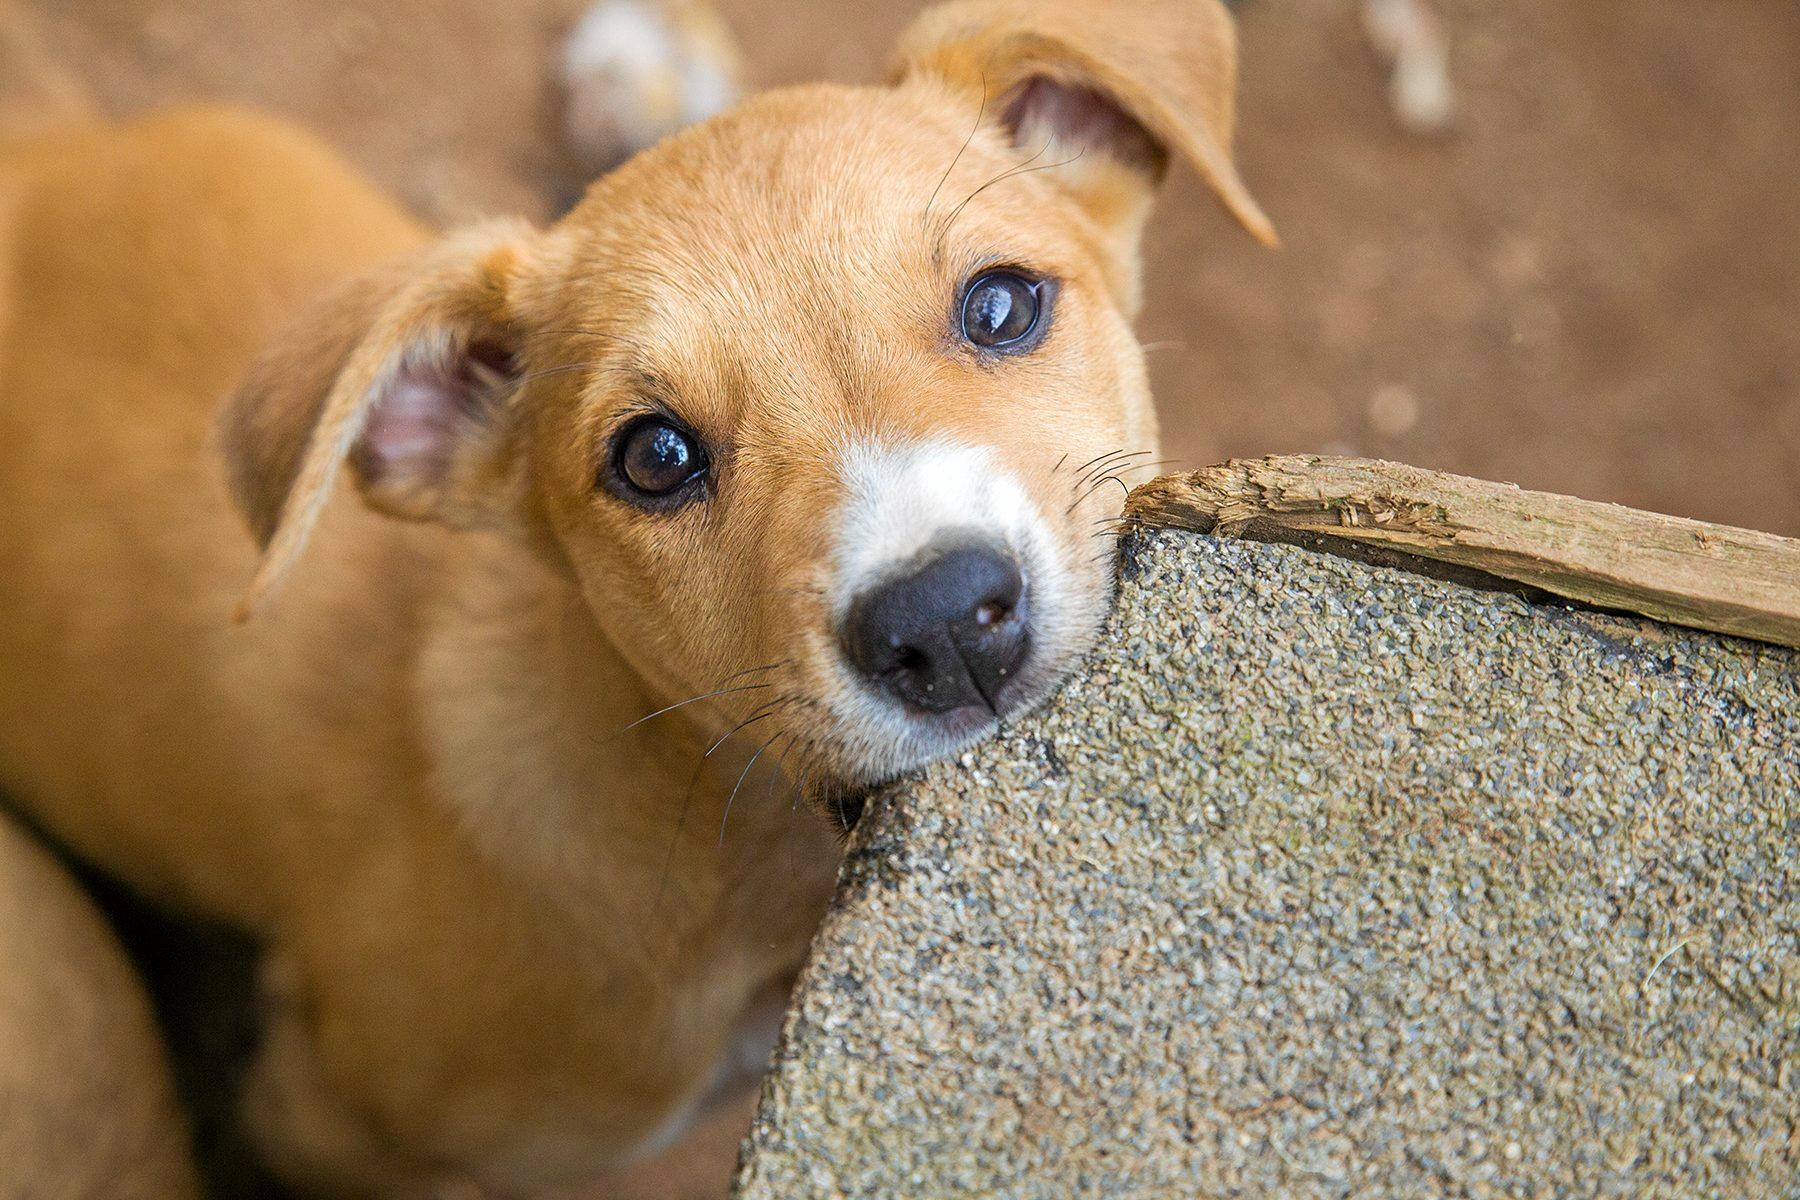 DEALY DO VIRUS ALERT: After a dog suffering from the Parvovirus, Byron Shire is urging all pet owners to ensure their best friend is inoculated against this too-often deadly disease.